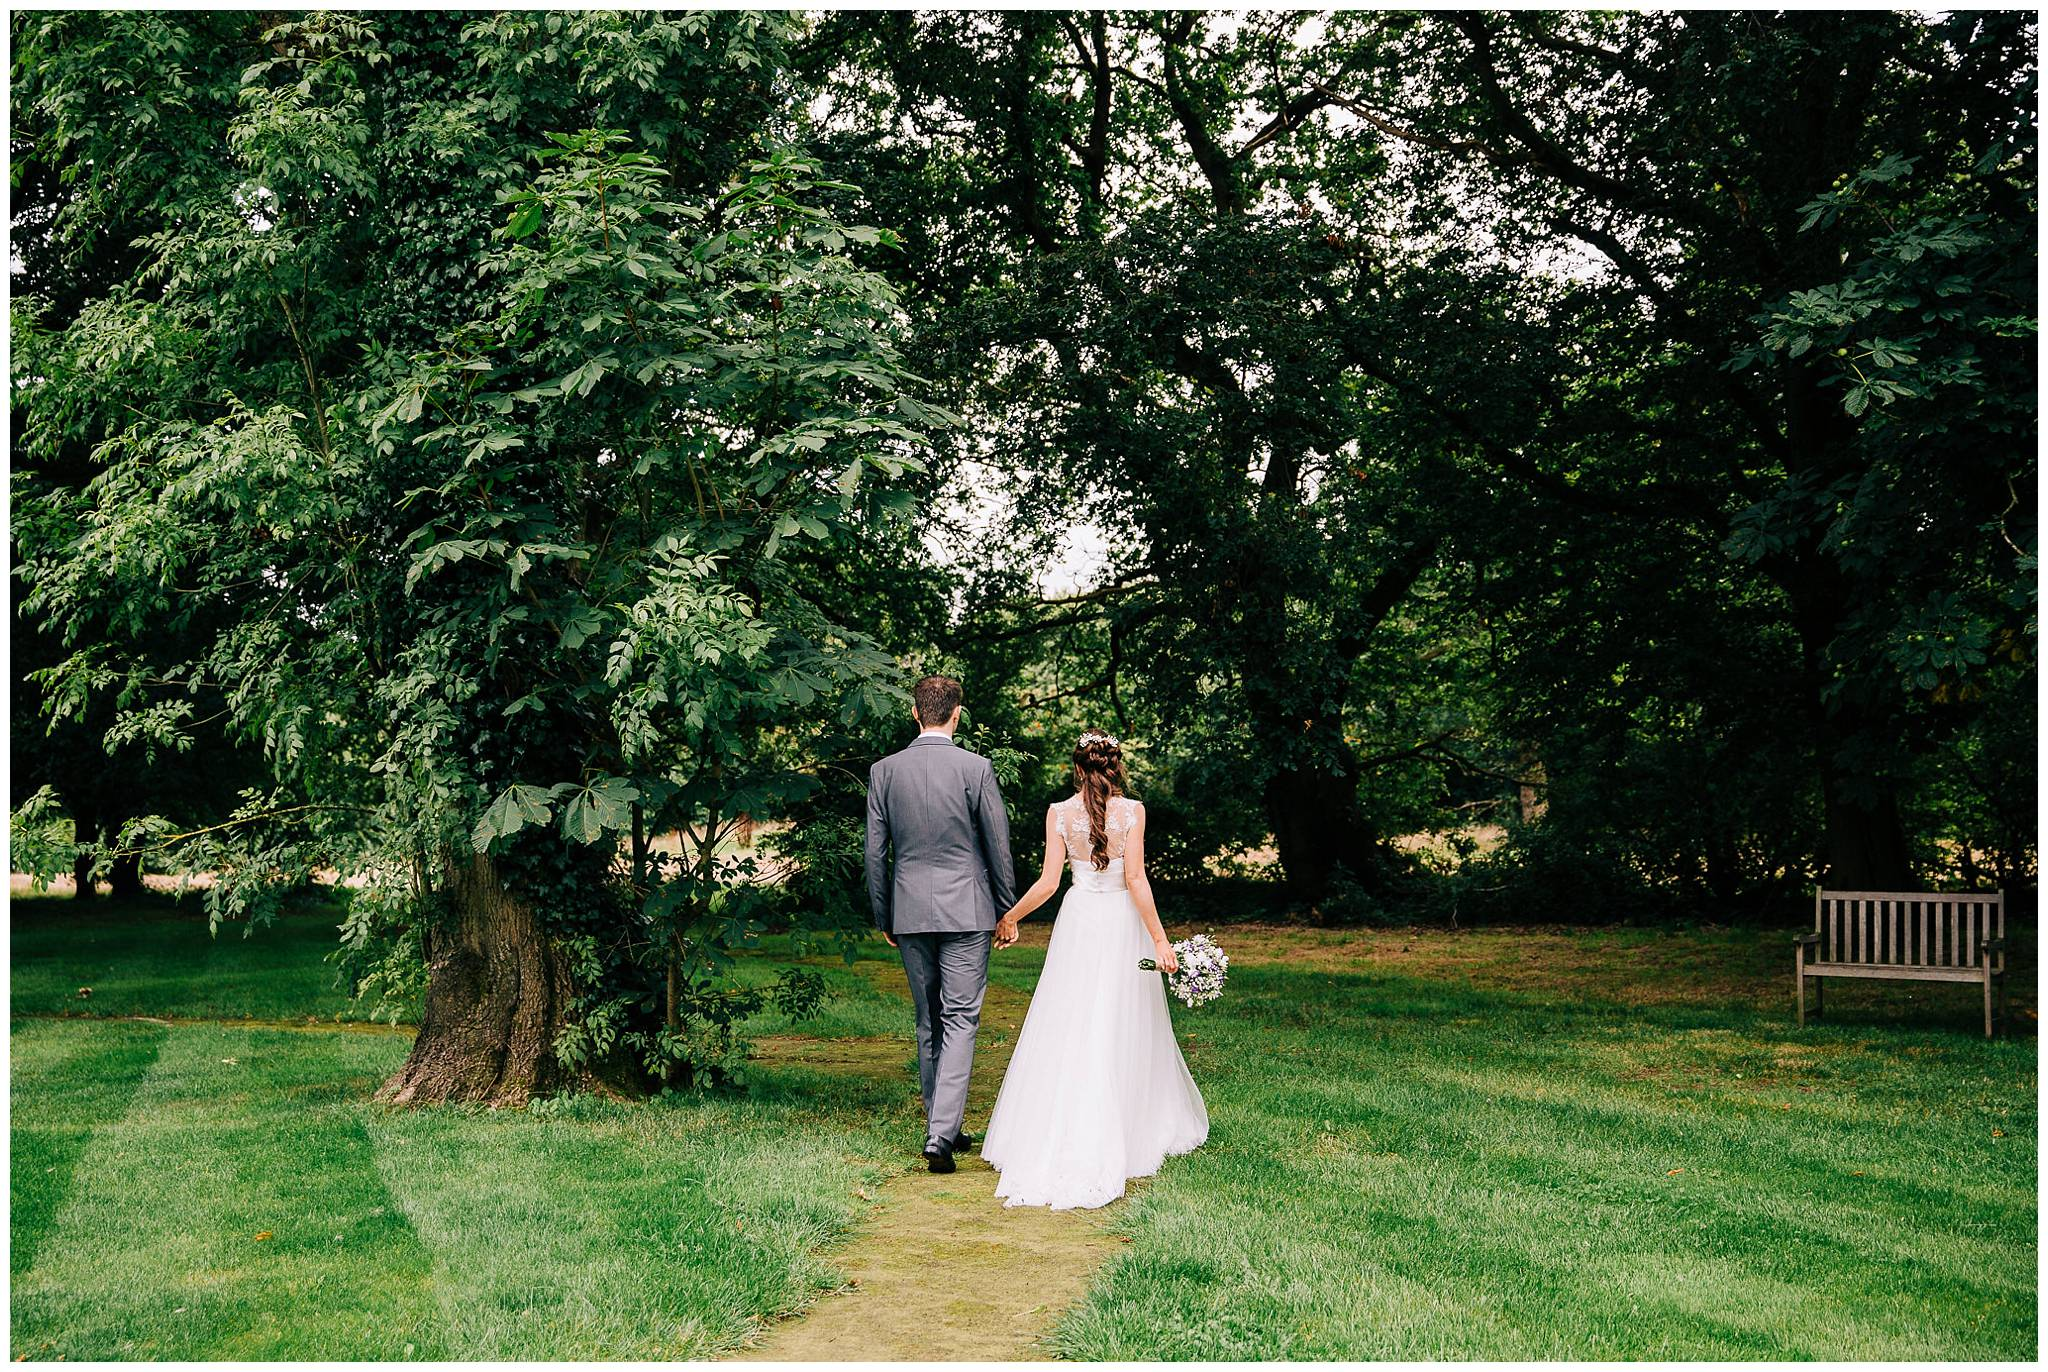 The Oak Tree at Peover - Cheshire Wedding Photographer-60.jpg